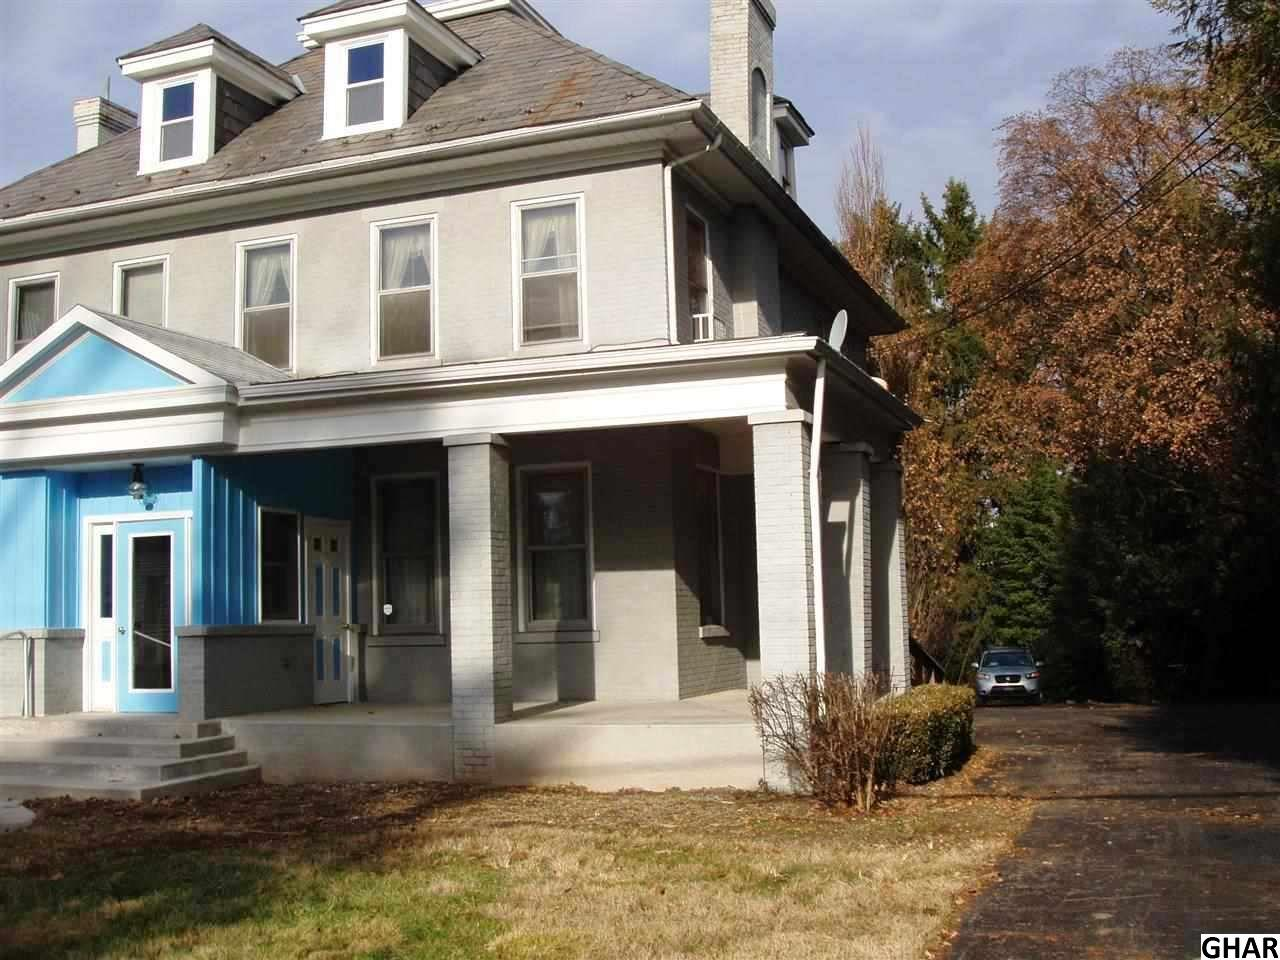 Rental Homes for Rent, ListingId:37184955, location: 616 W Main St Mechanicsburg 17055